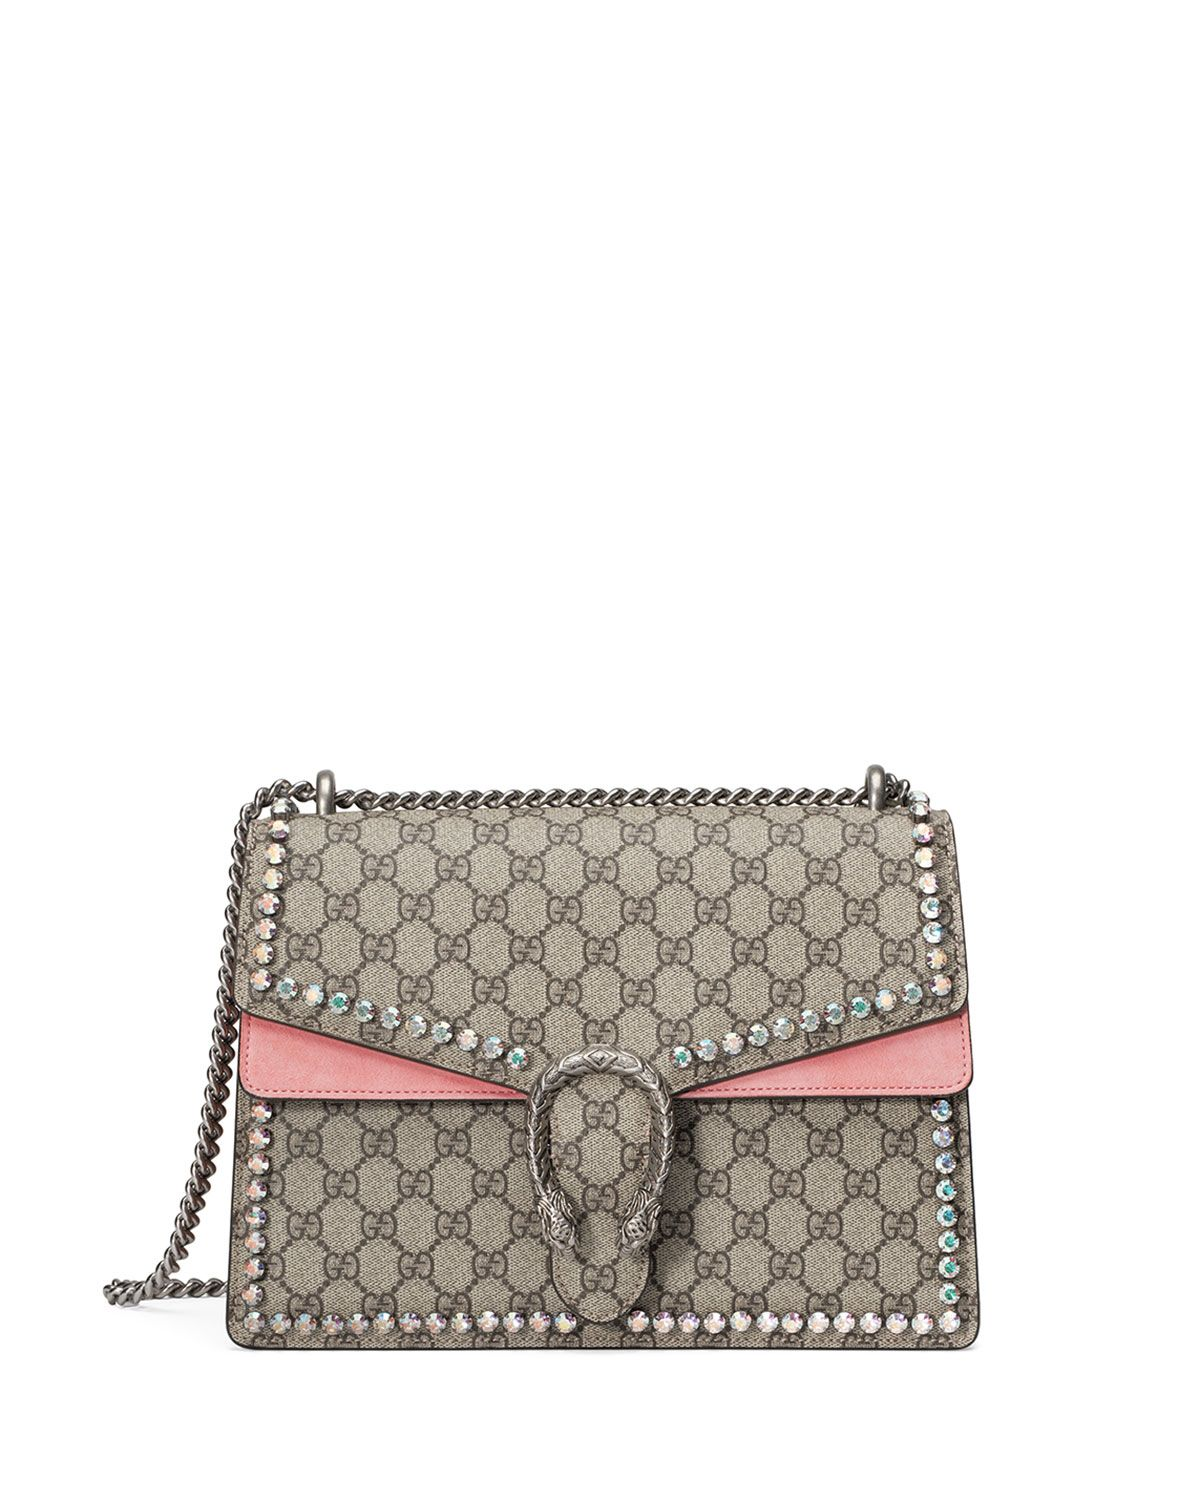 e8bdddd5e270 Dionysus Snake-Embroidered Crossbody Bag Multi | *Handbags, Wallets ...